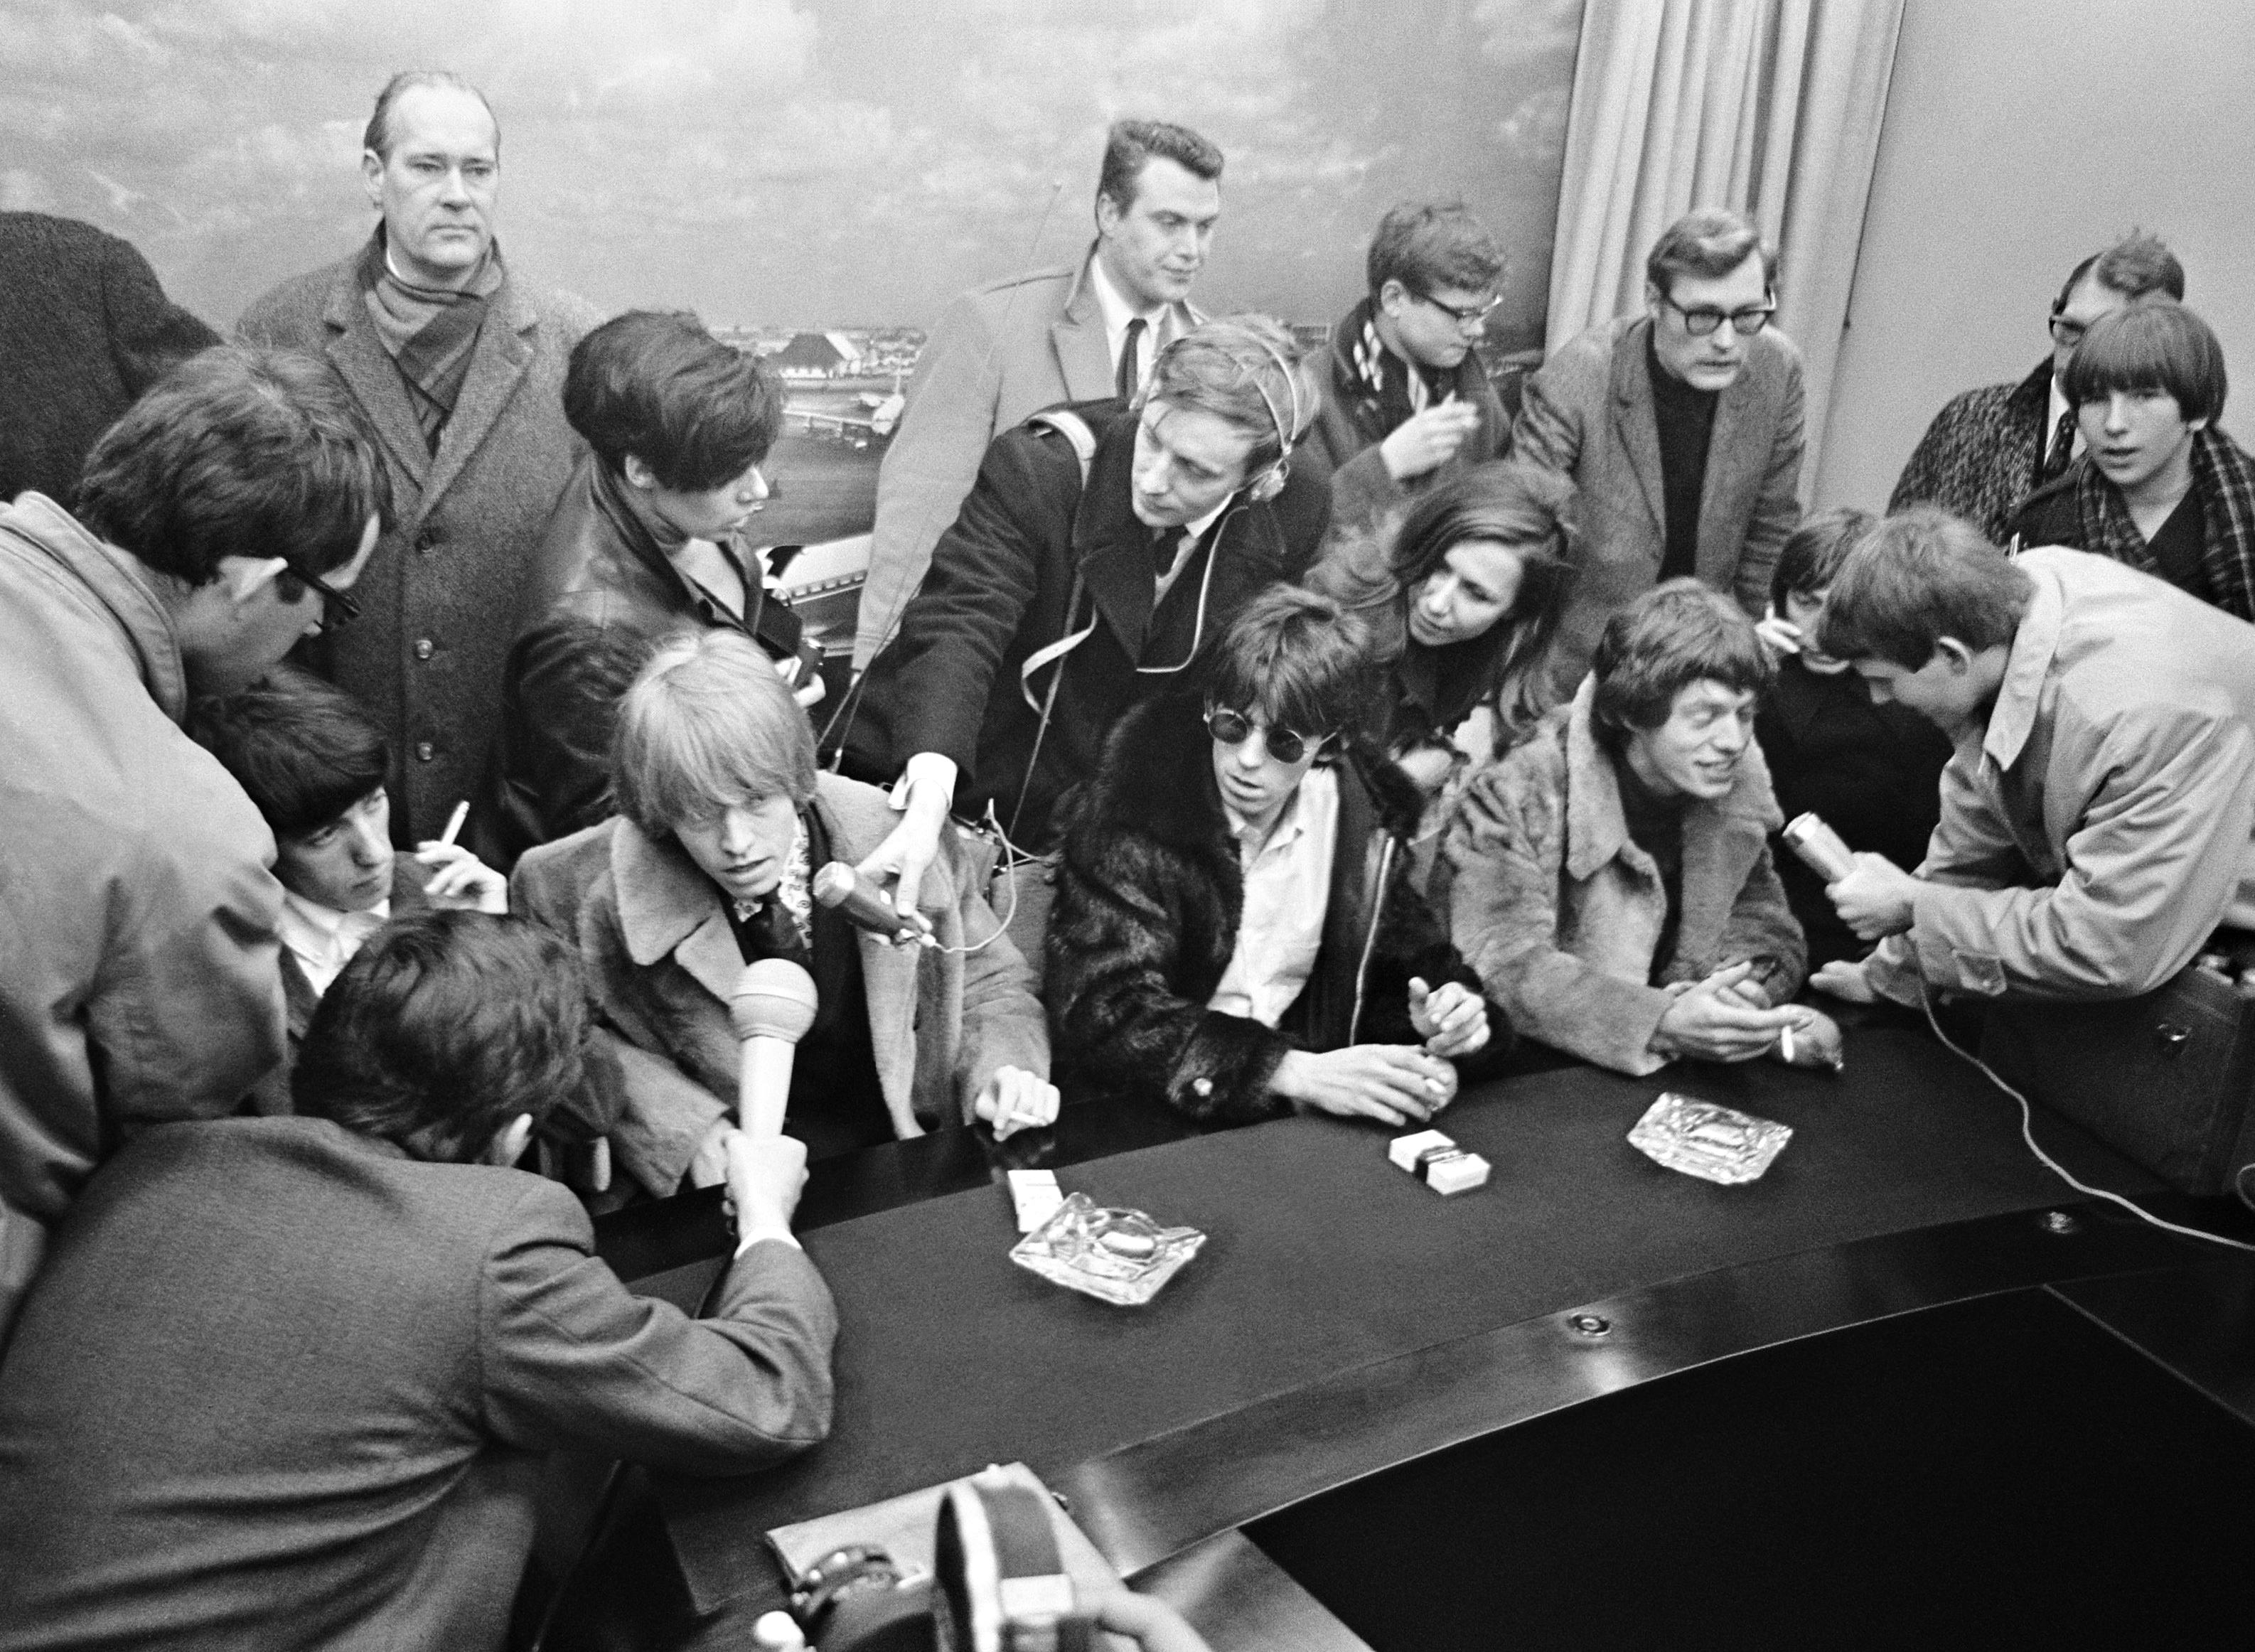 https://upload.wikimedia.org/wikipedia/commons/7/75/Rolling_Stones_at_Schiphol_1966.png